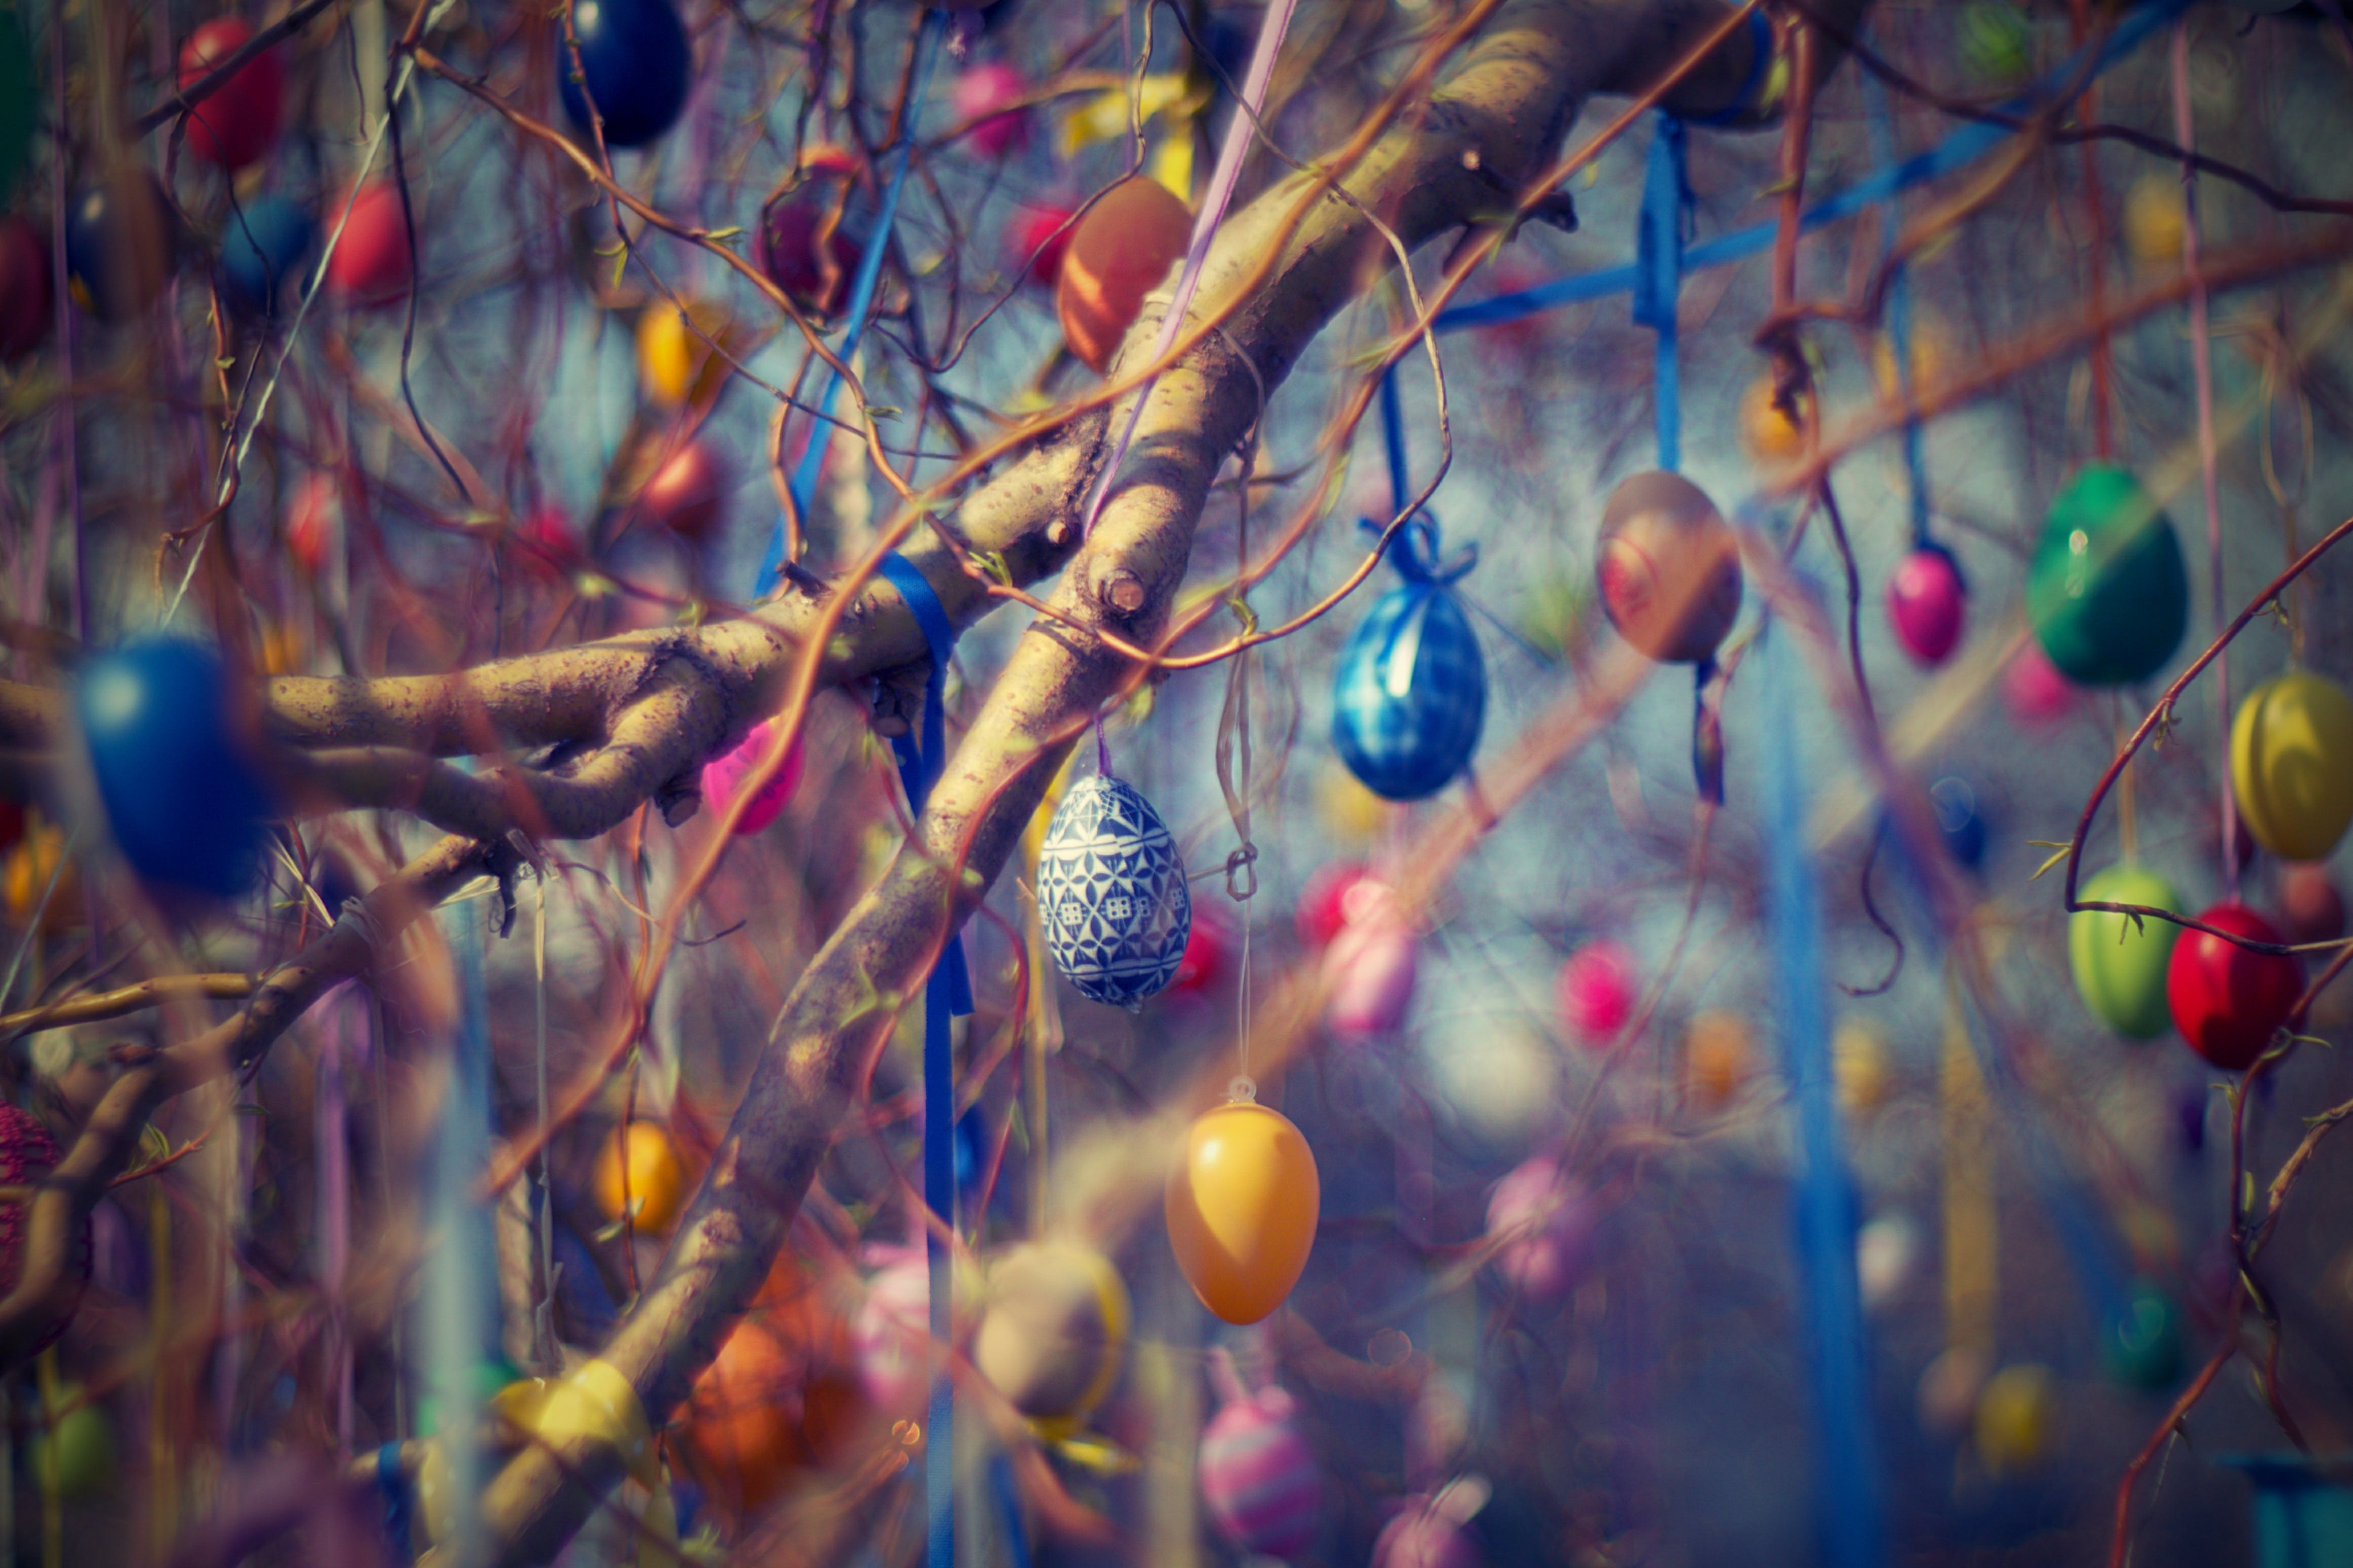 Assorted-color Hanging Decors on Tree